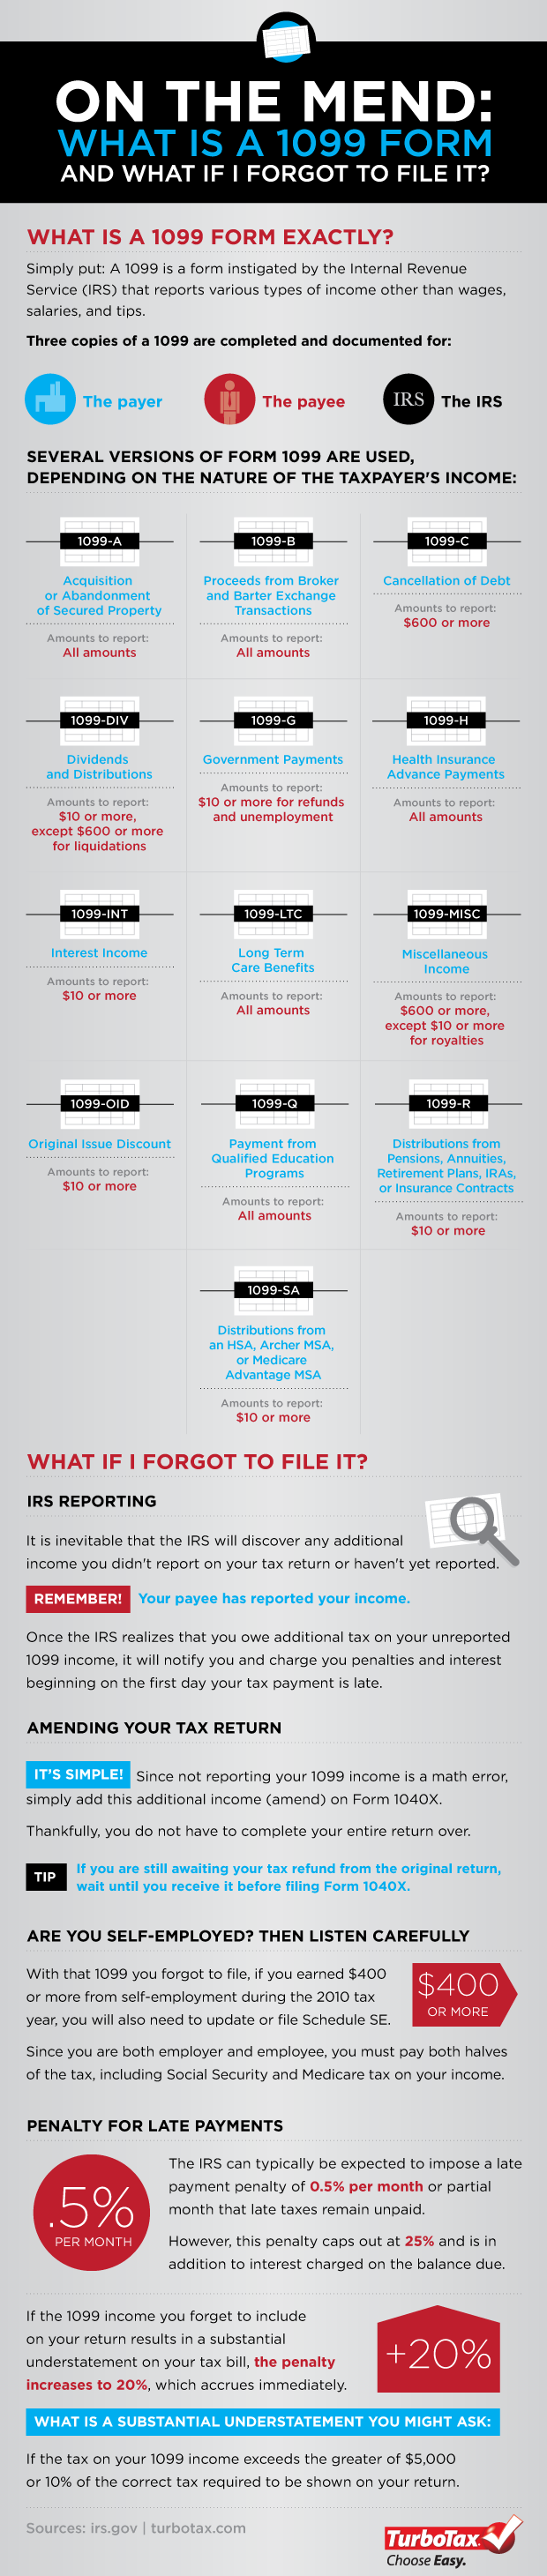 On The Mend: What Is A 1099 Tax Form and What If I Forgot to File ...